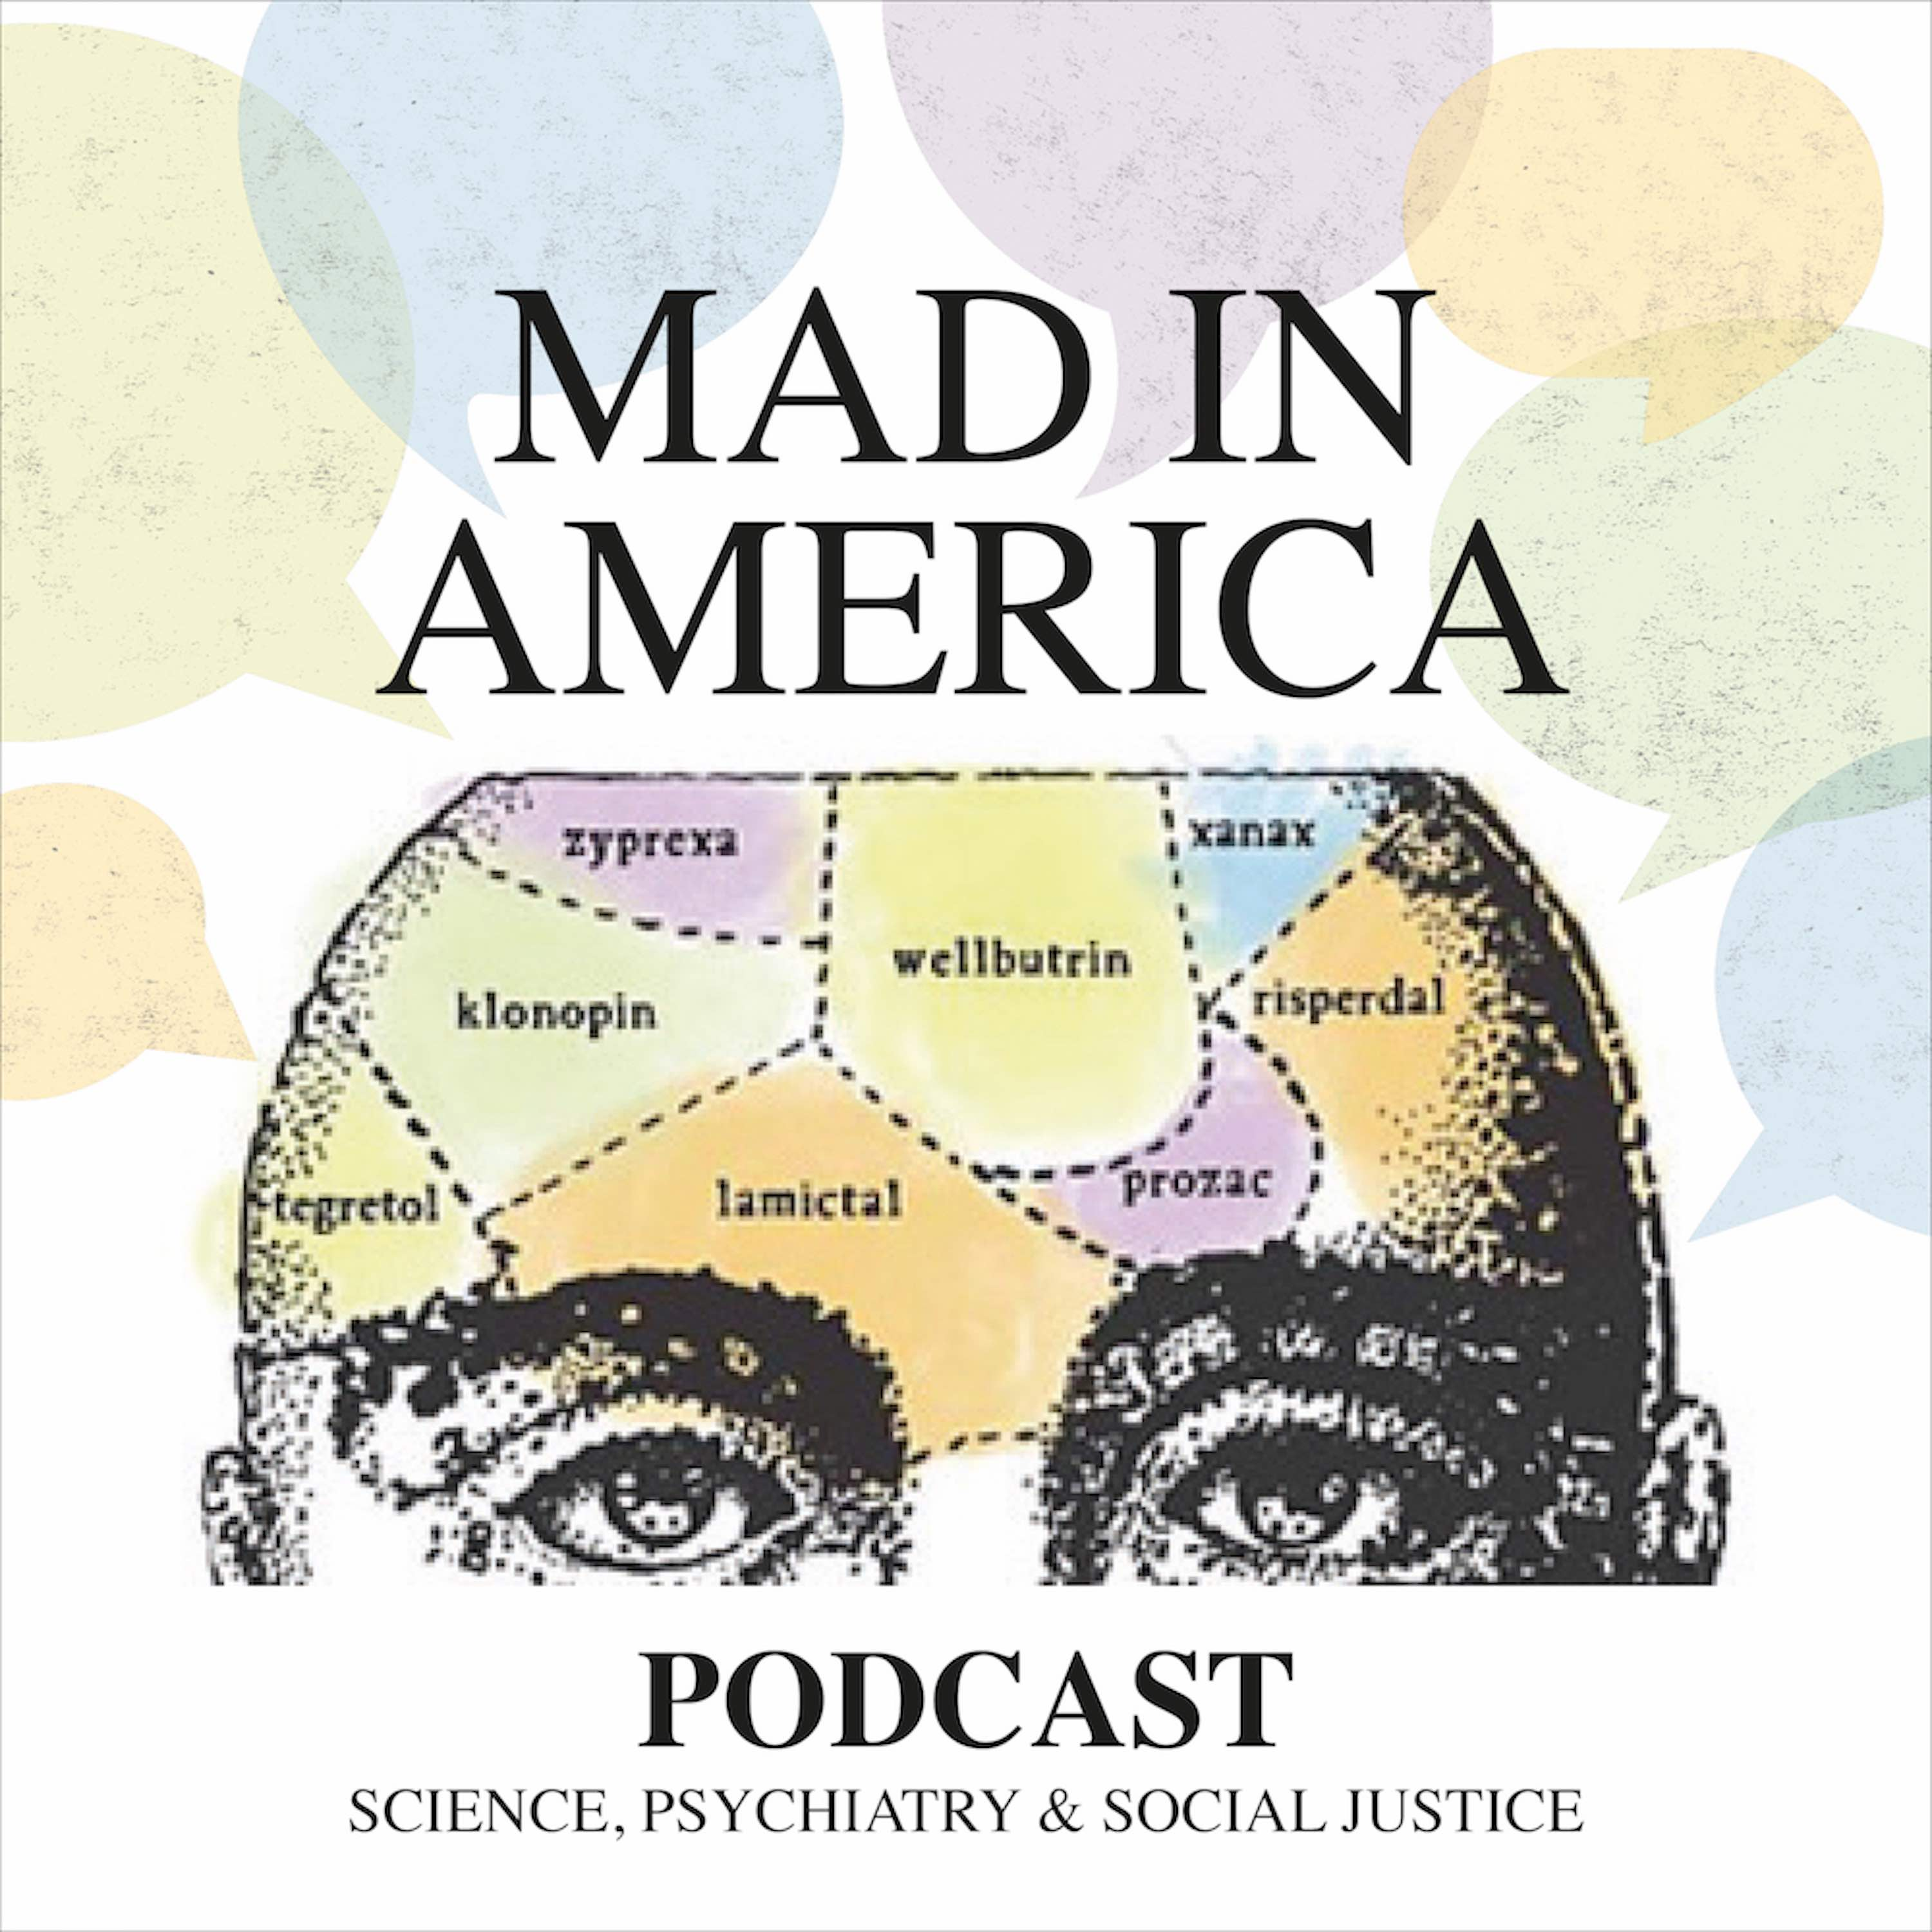 Mad in America: Rethinking Mental Health - Joseph Firth - The Role of Exercise and Nutrition in Early Psychosis